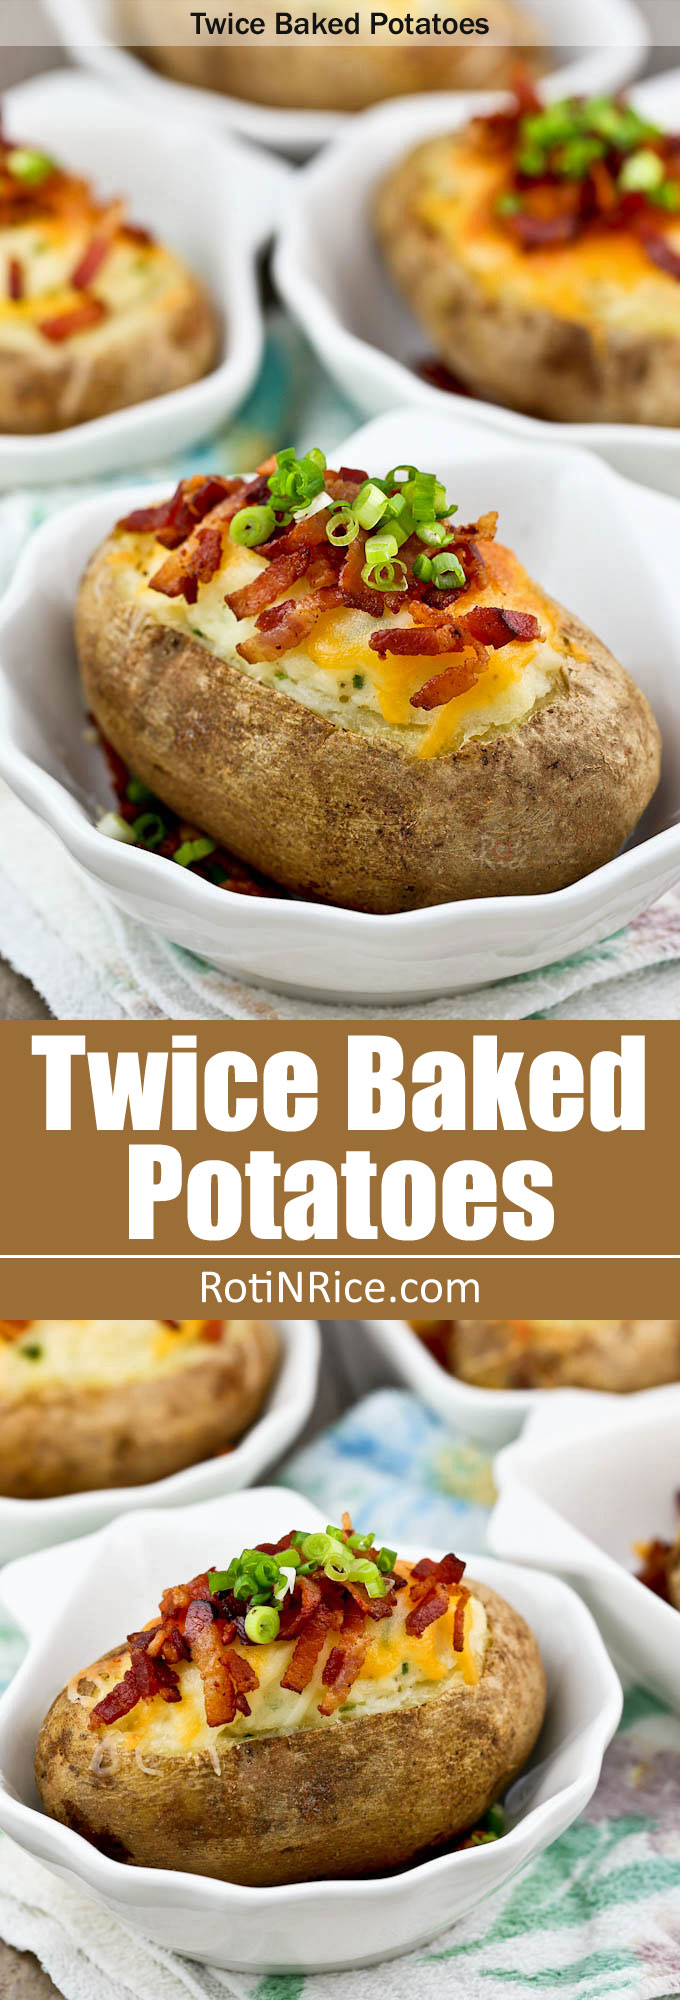 Extra yummy sour cream Twice Baked Potatoes topped with melted cheese, crispy bacon, and green onions. It is the perfect side dish! | RotiNRice.com